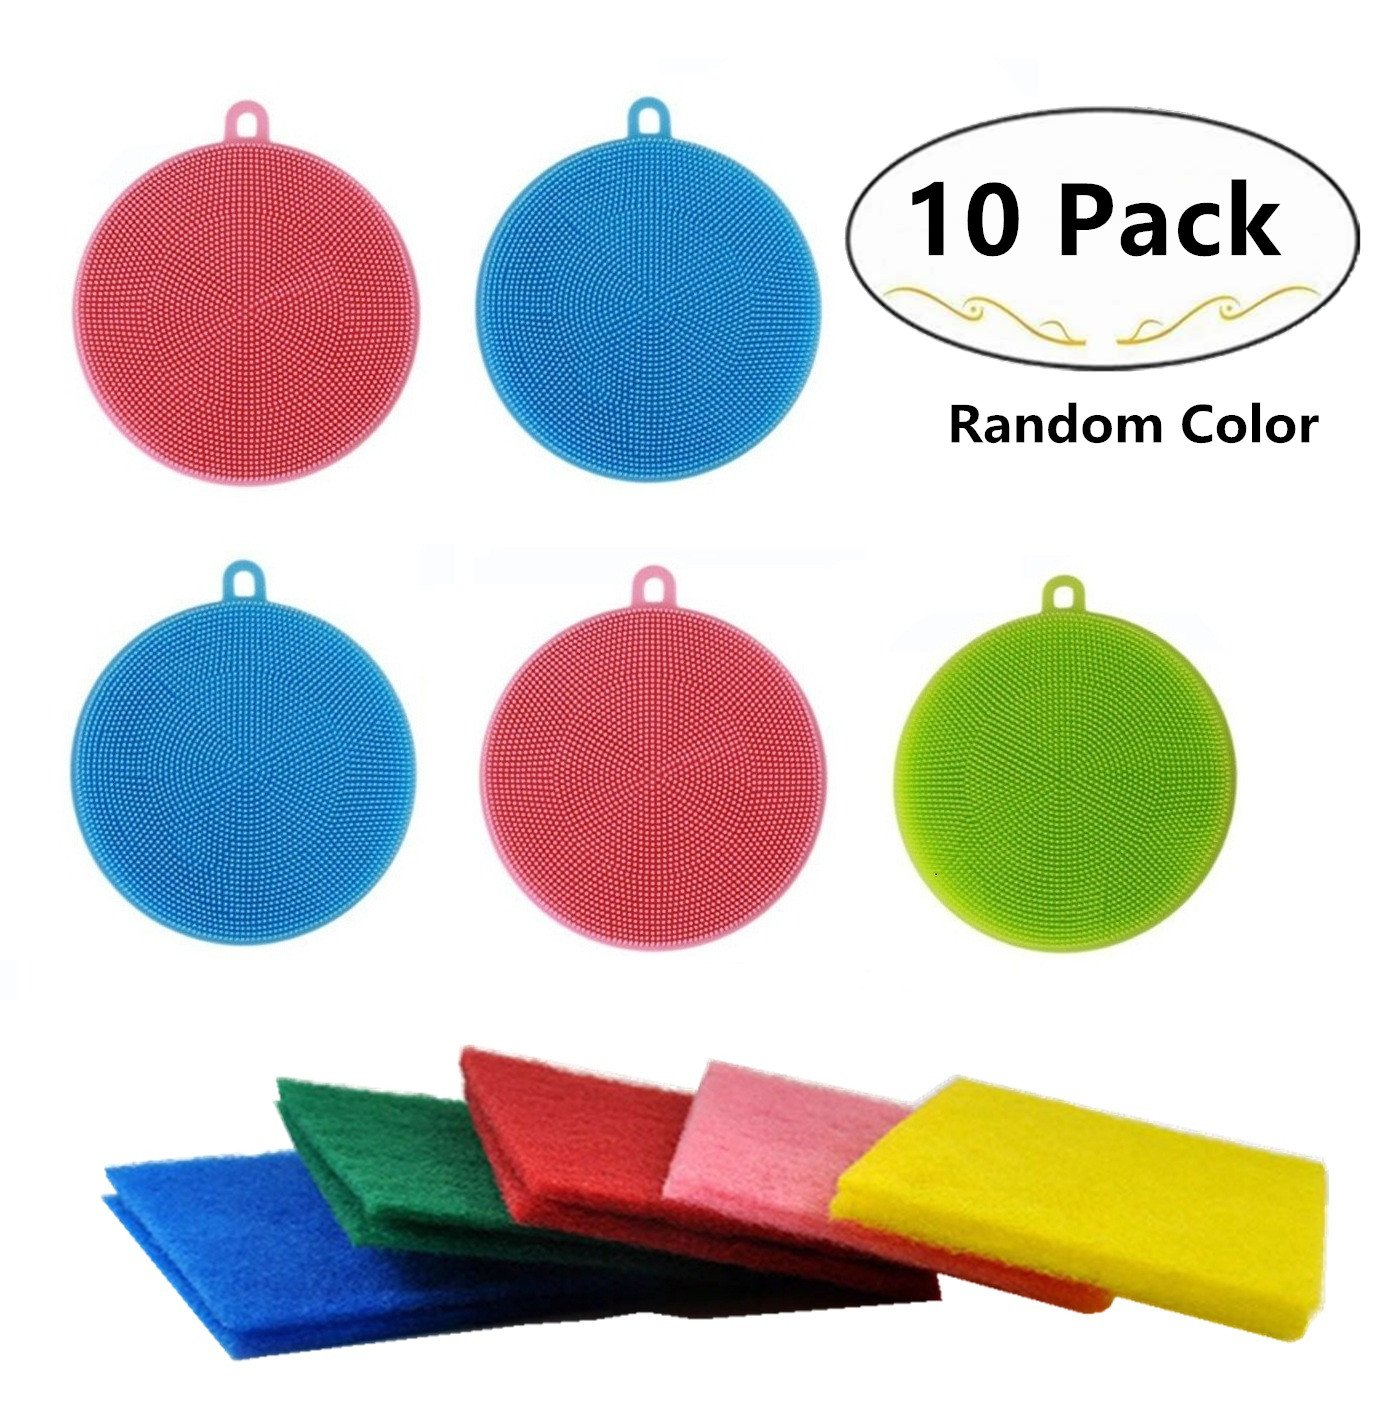 5 Pack Antibacterial Silicone Dish Scrubber Dishwashing Cleaning Brush and 5 Scouring Pads for Bonus, Carnatory Fruit and Vegetable Washer Heat Insulation Pad For Kitchen Wash Pot Pan Dish Bowl Carnationy